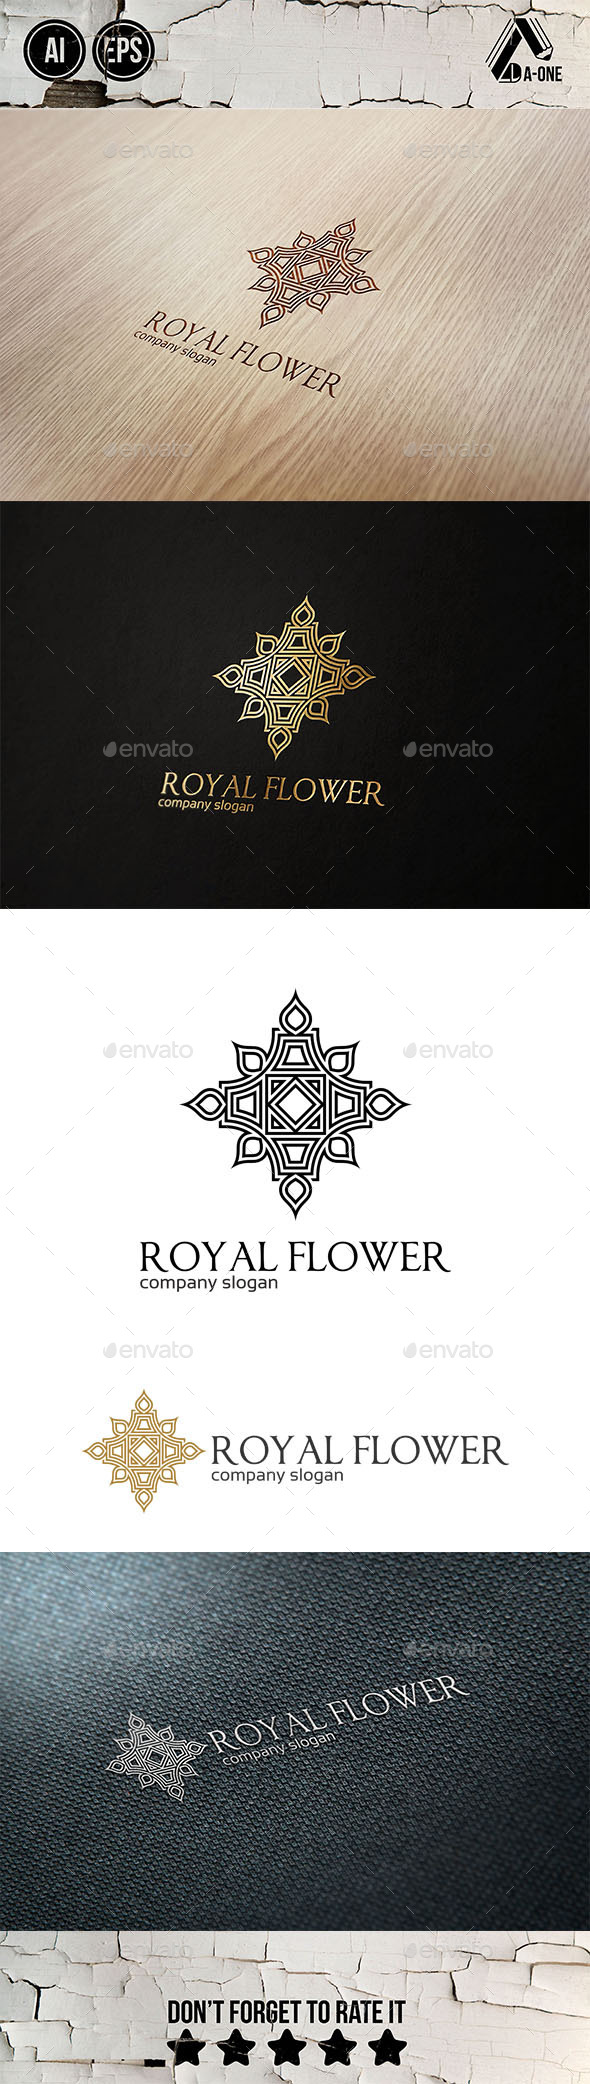 GraphicRiver Royal Flower Logo 9005578